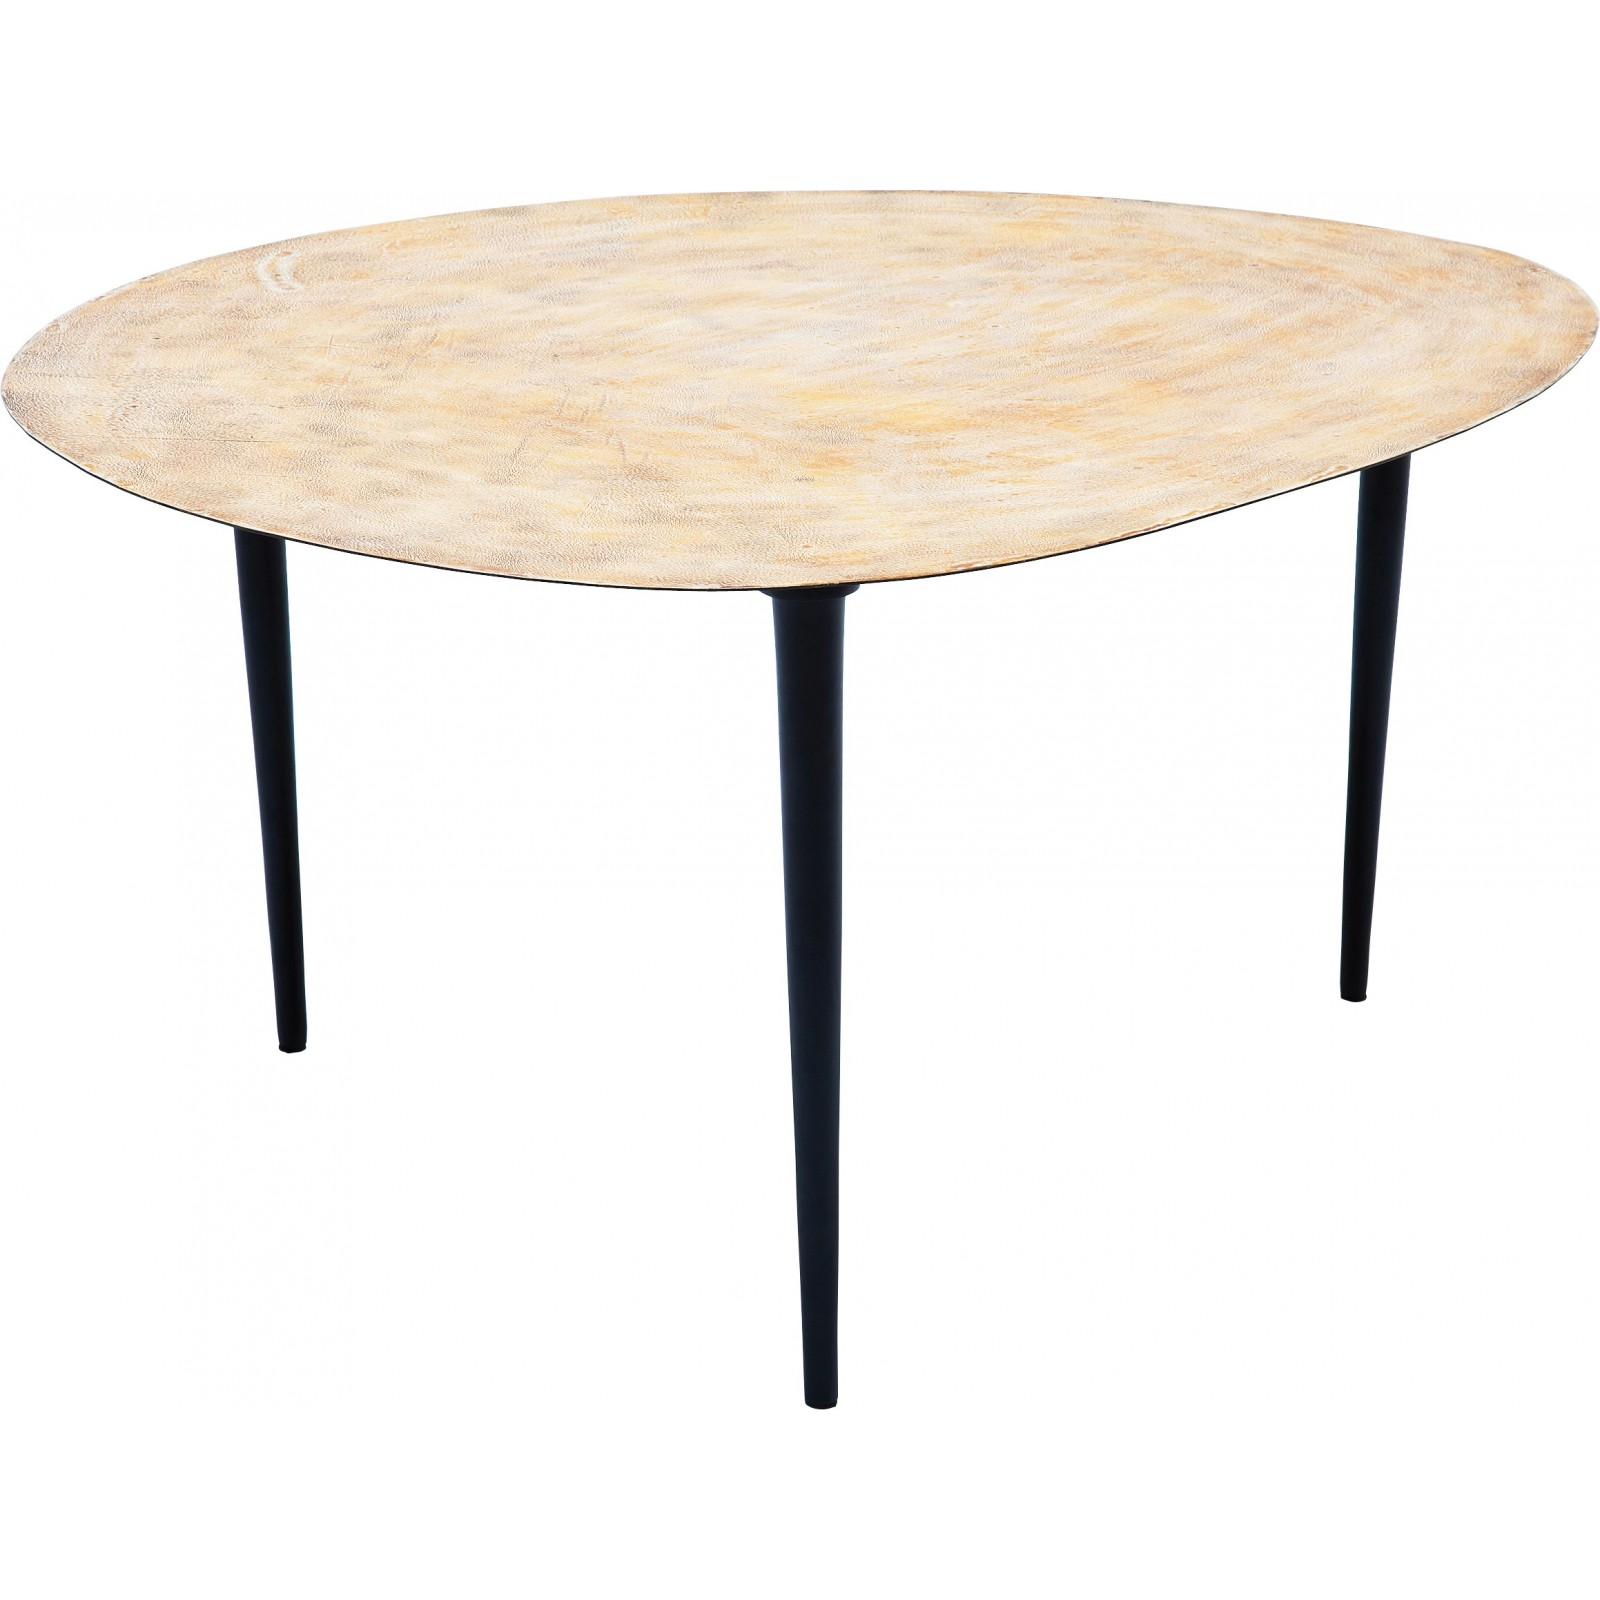 Table de salon egg gold 66x74cm kare design for Table de salon